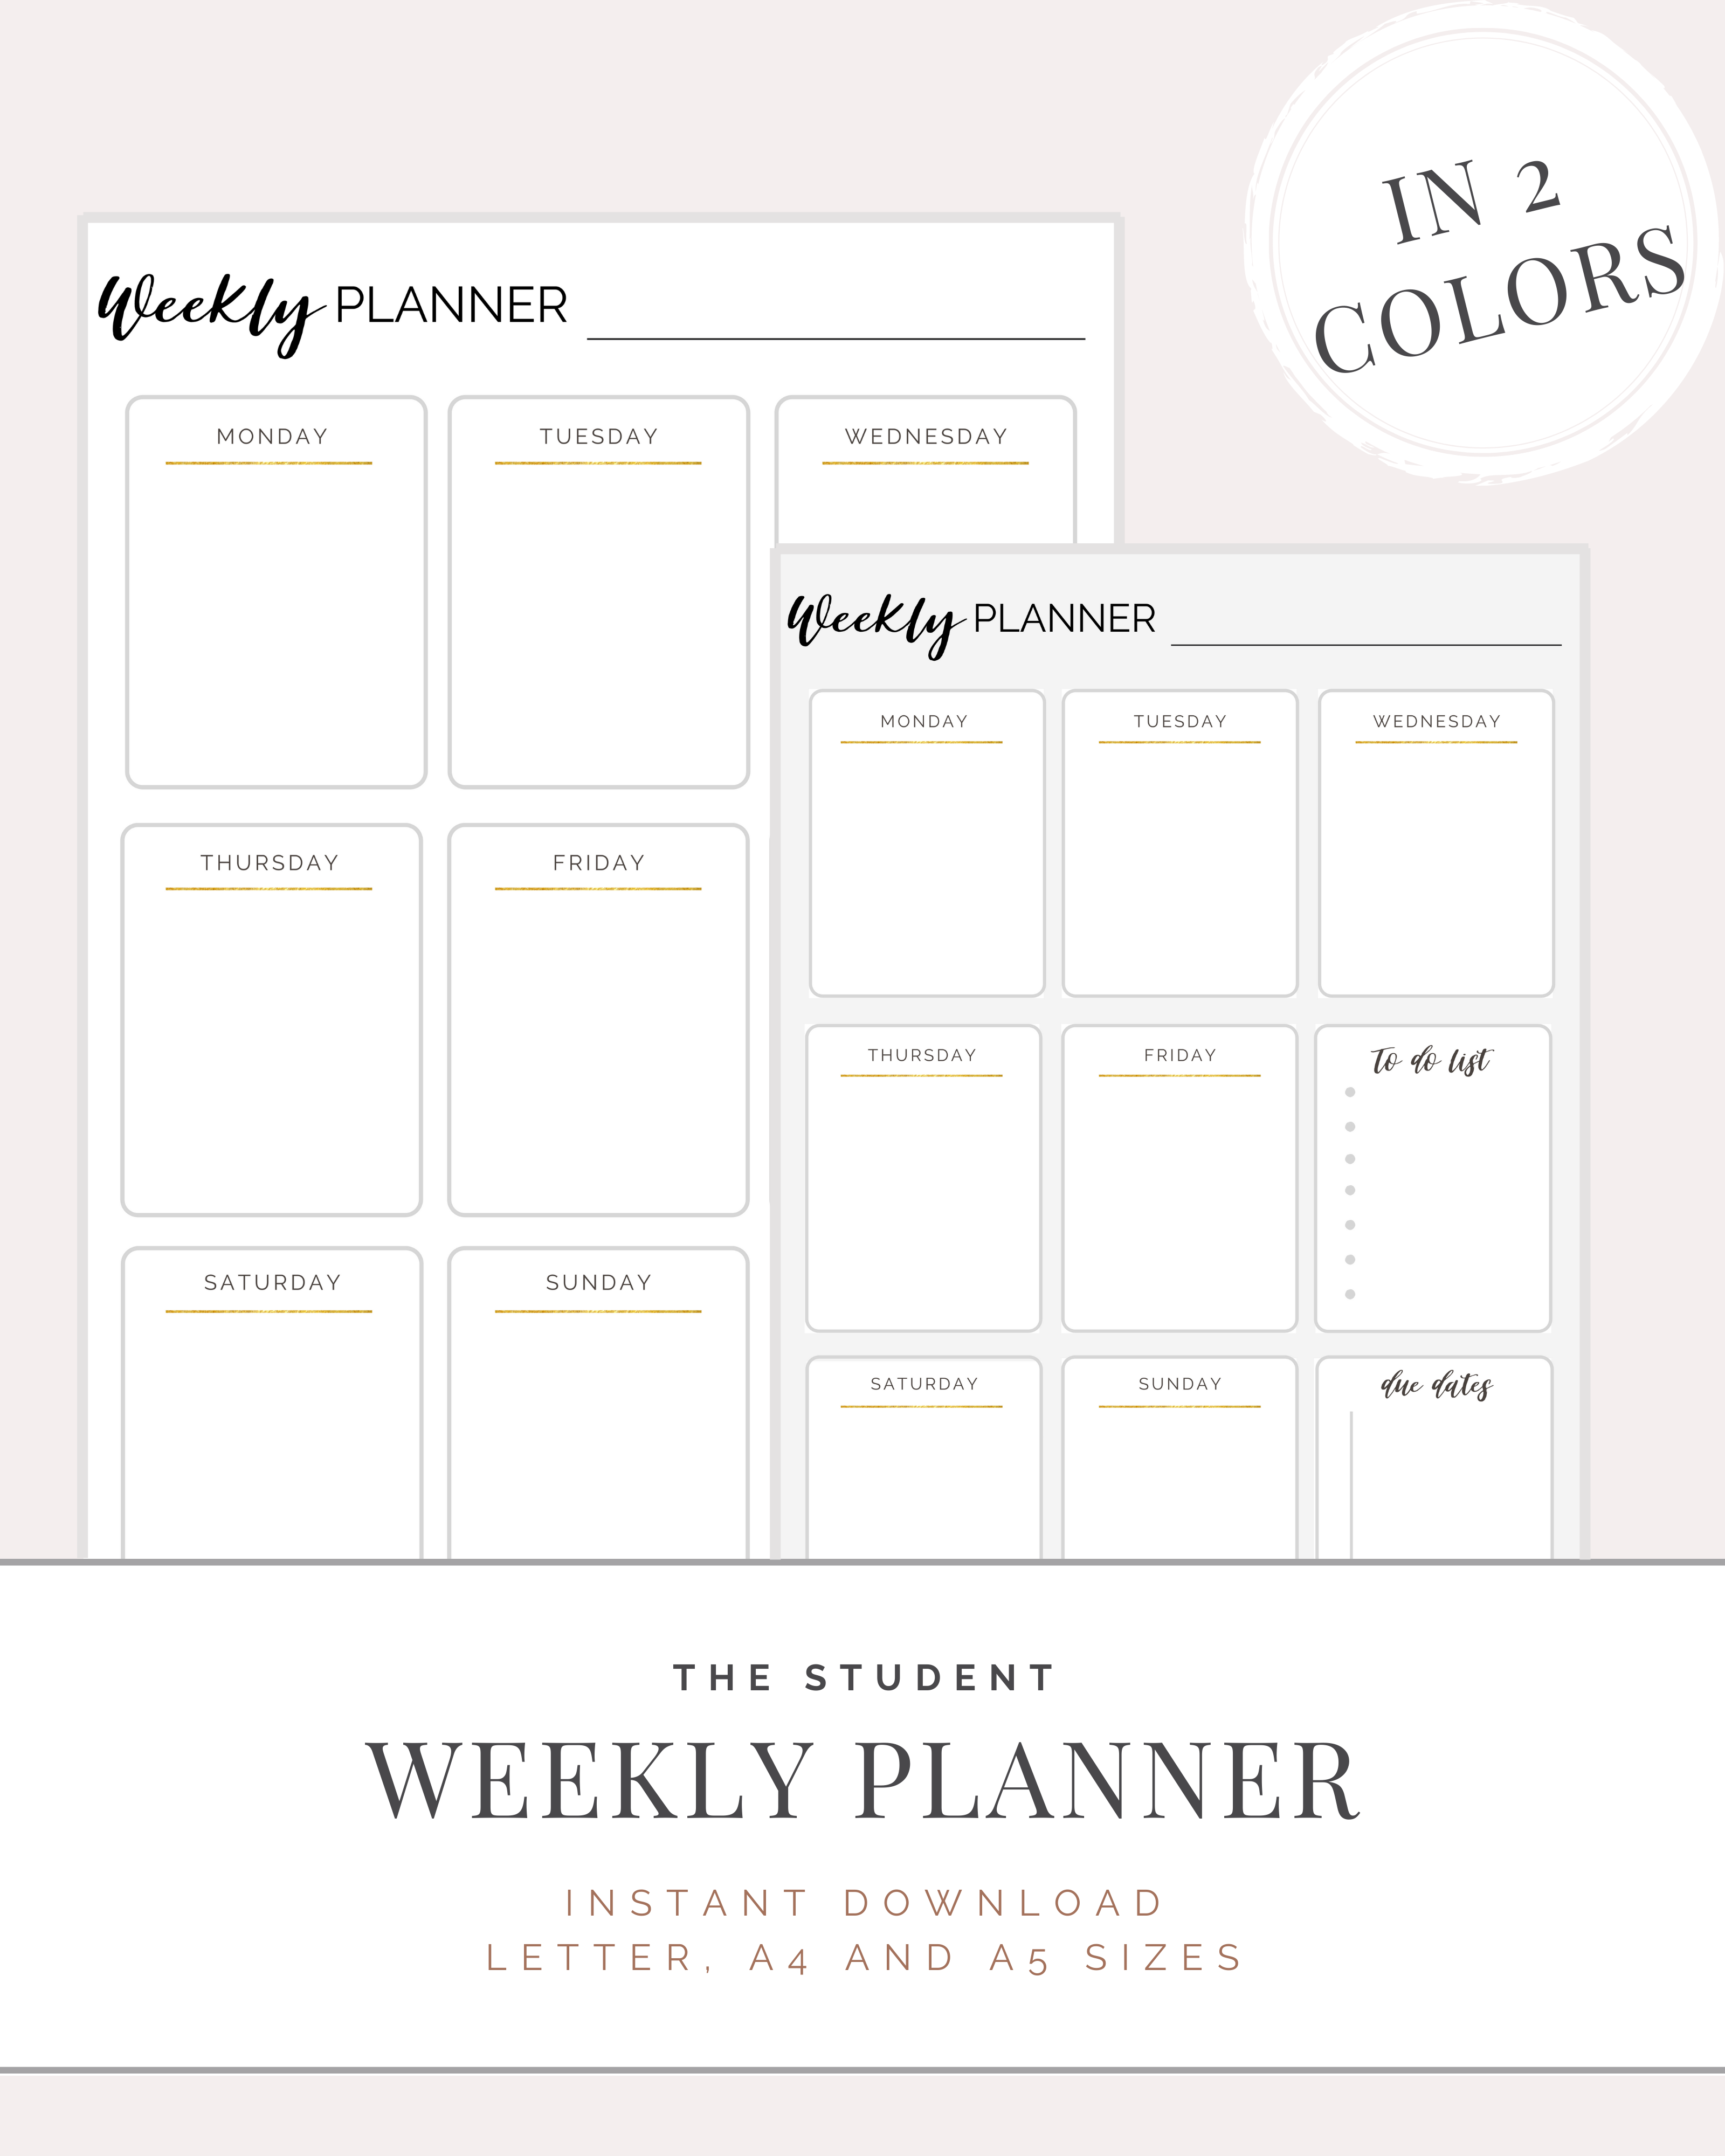 Weekly Planner For Students Digital Download Letter A4